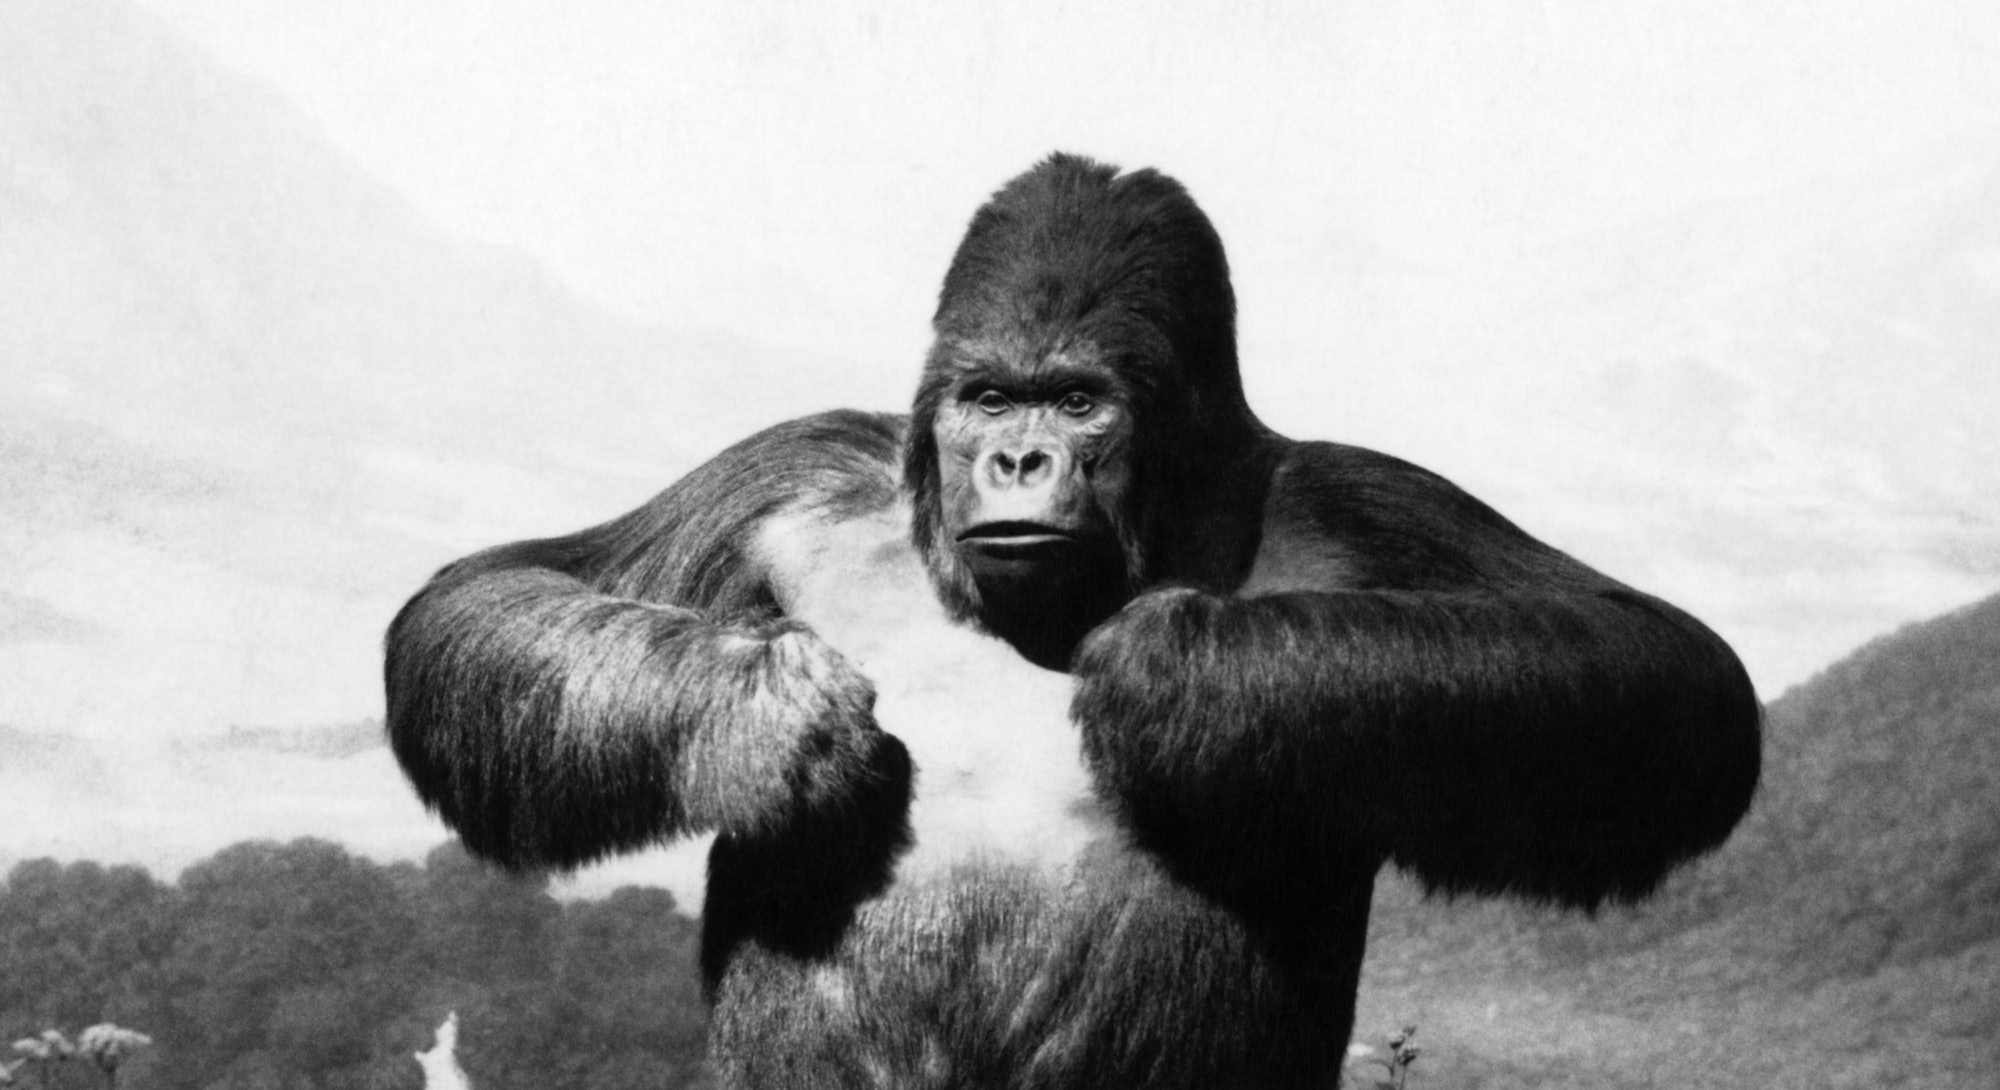 1940s STUFFED GORILLA Gorilla gorilla TOWERING ABOVE JUNGLE BEATING CHEST IN MUSEUM DIORAMA  (Photo by H. Armstrong Roberts/ClassicStock/Getty Images)